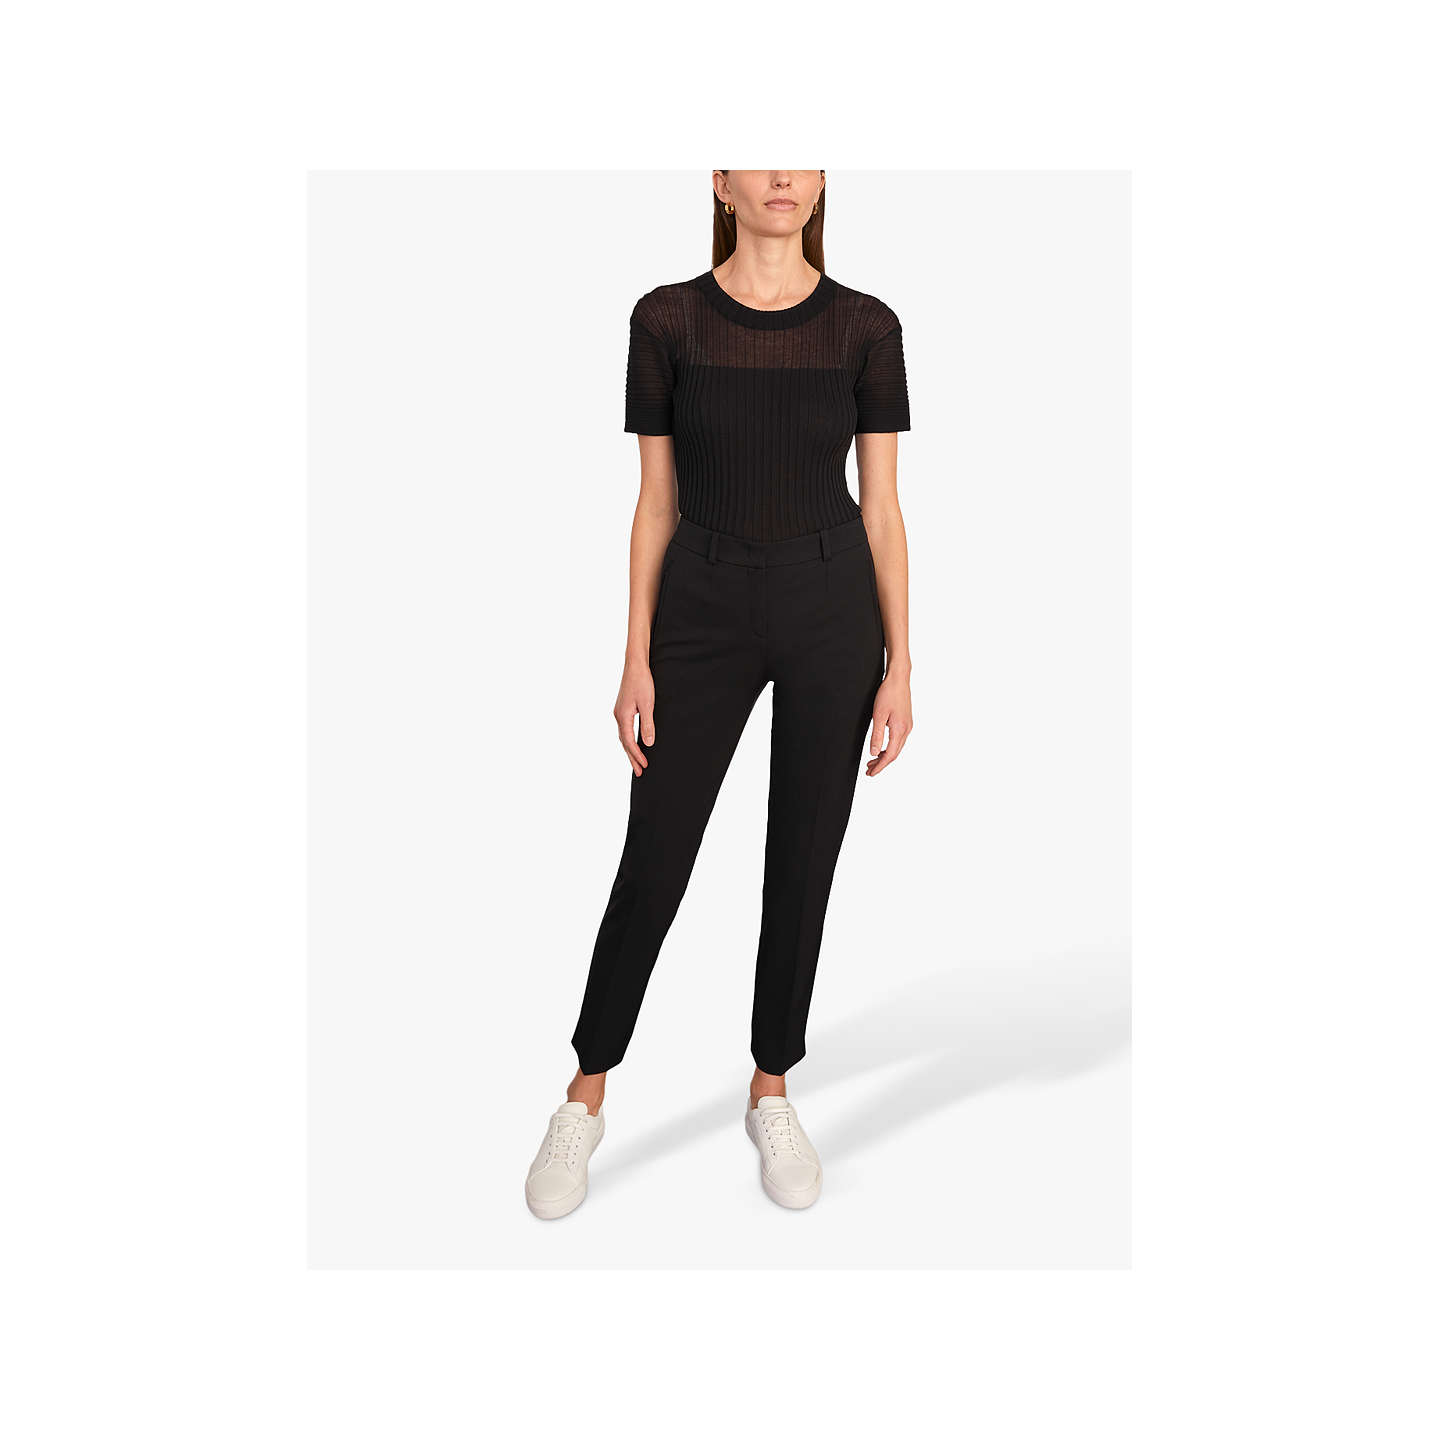 BuyJigsaw Paris Slim Tapered Trousers, Black, 8 Online at johnlewis.com